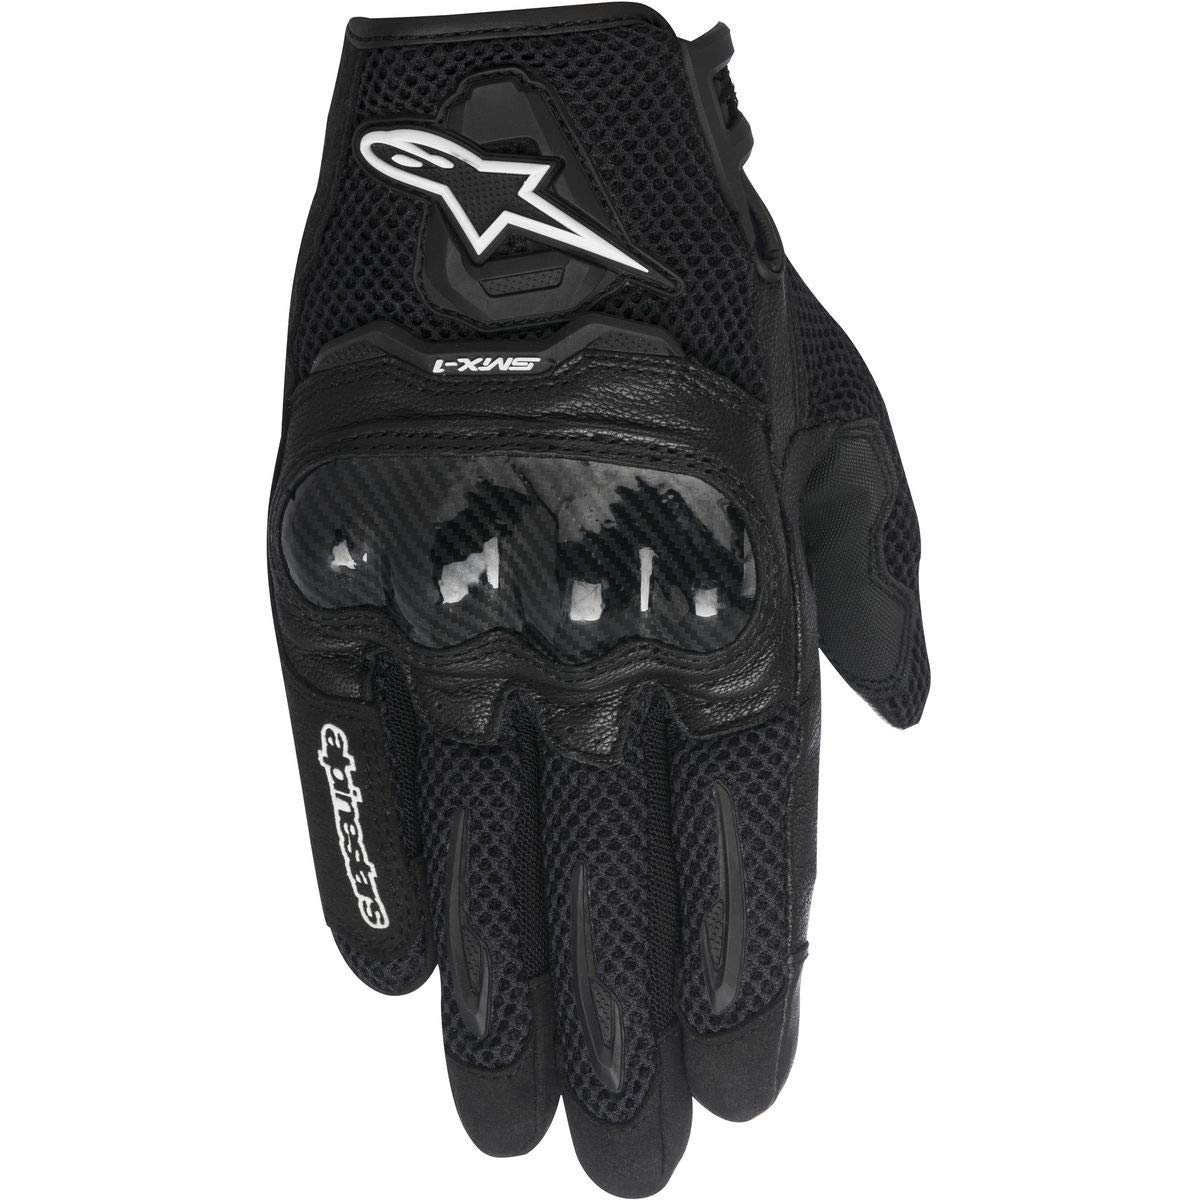 Alpinestars Women's Stella SMX-1 Air Gloves (Medium) (Black) by Alpinestars